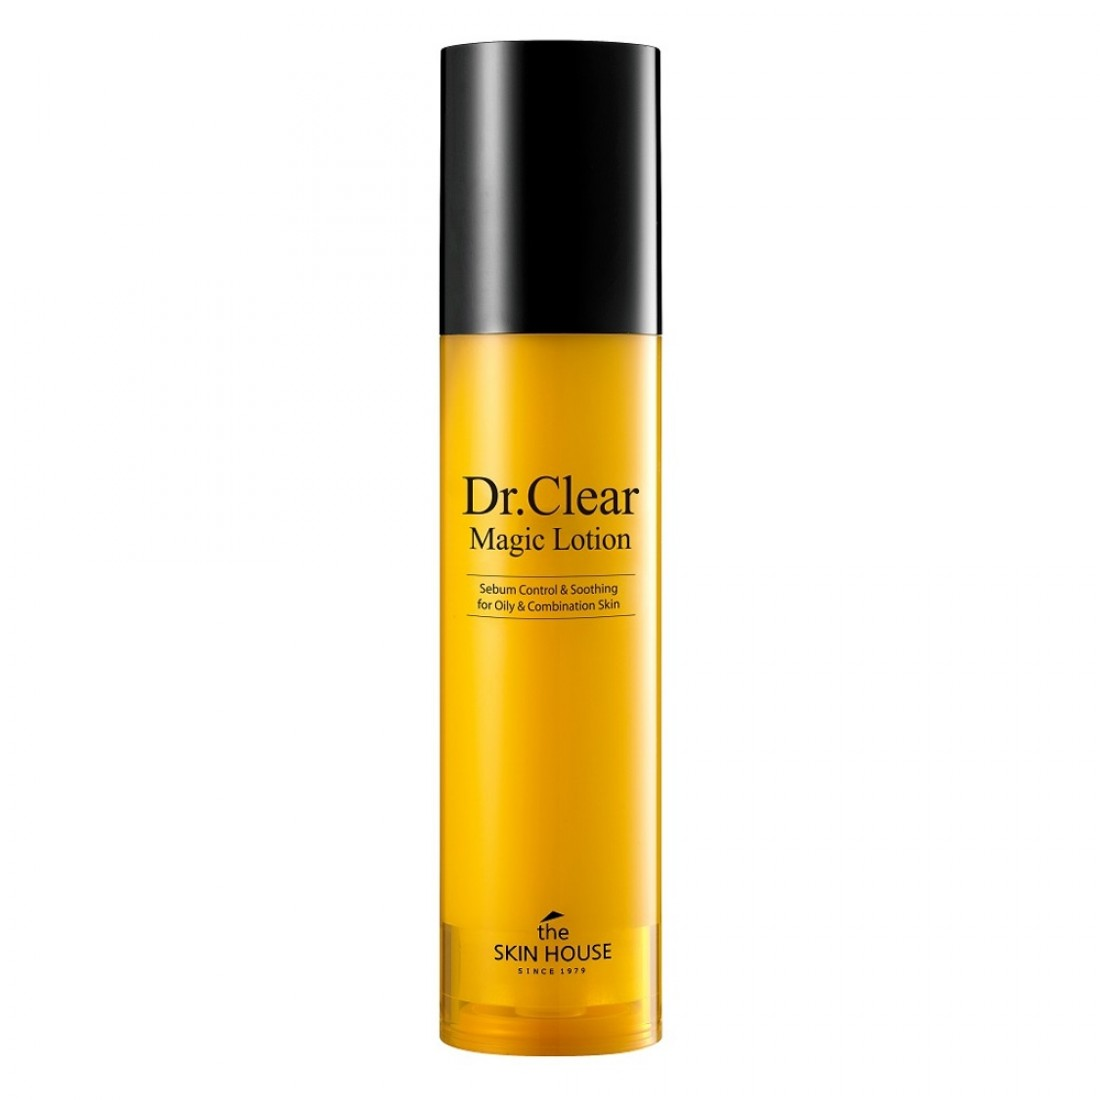 The Skin House Dr.Clear Magic Lotion 50 ml